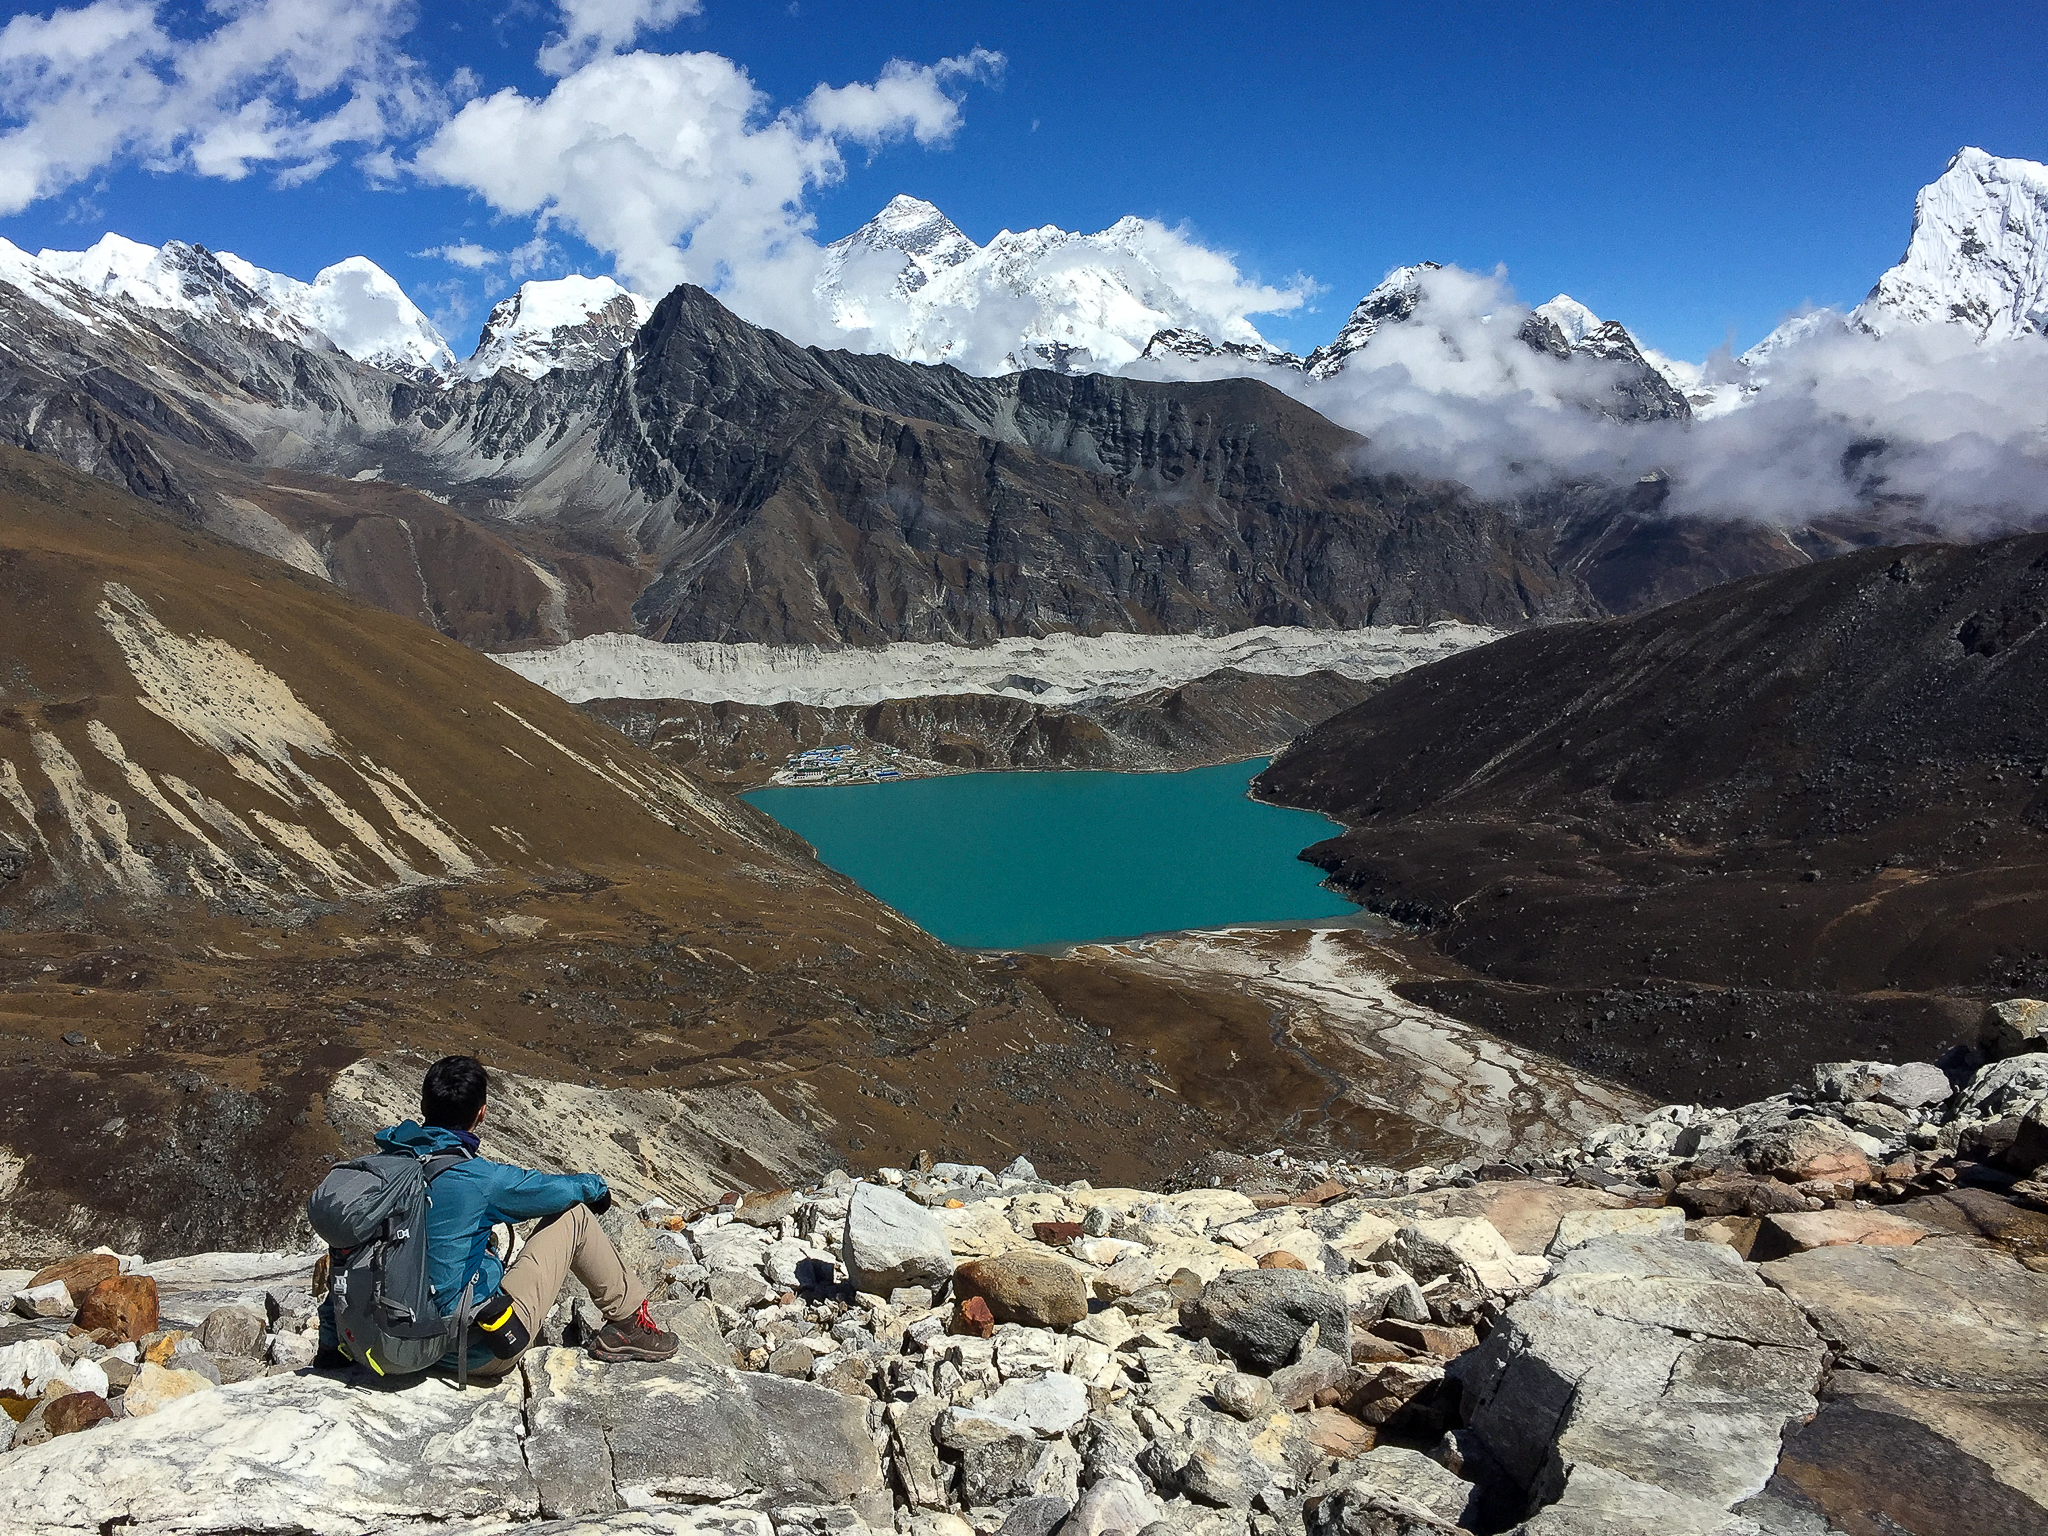 On the way to Gokyo Lakes after passing Renjo La (Pass)